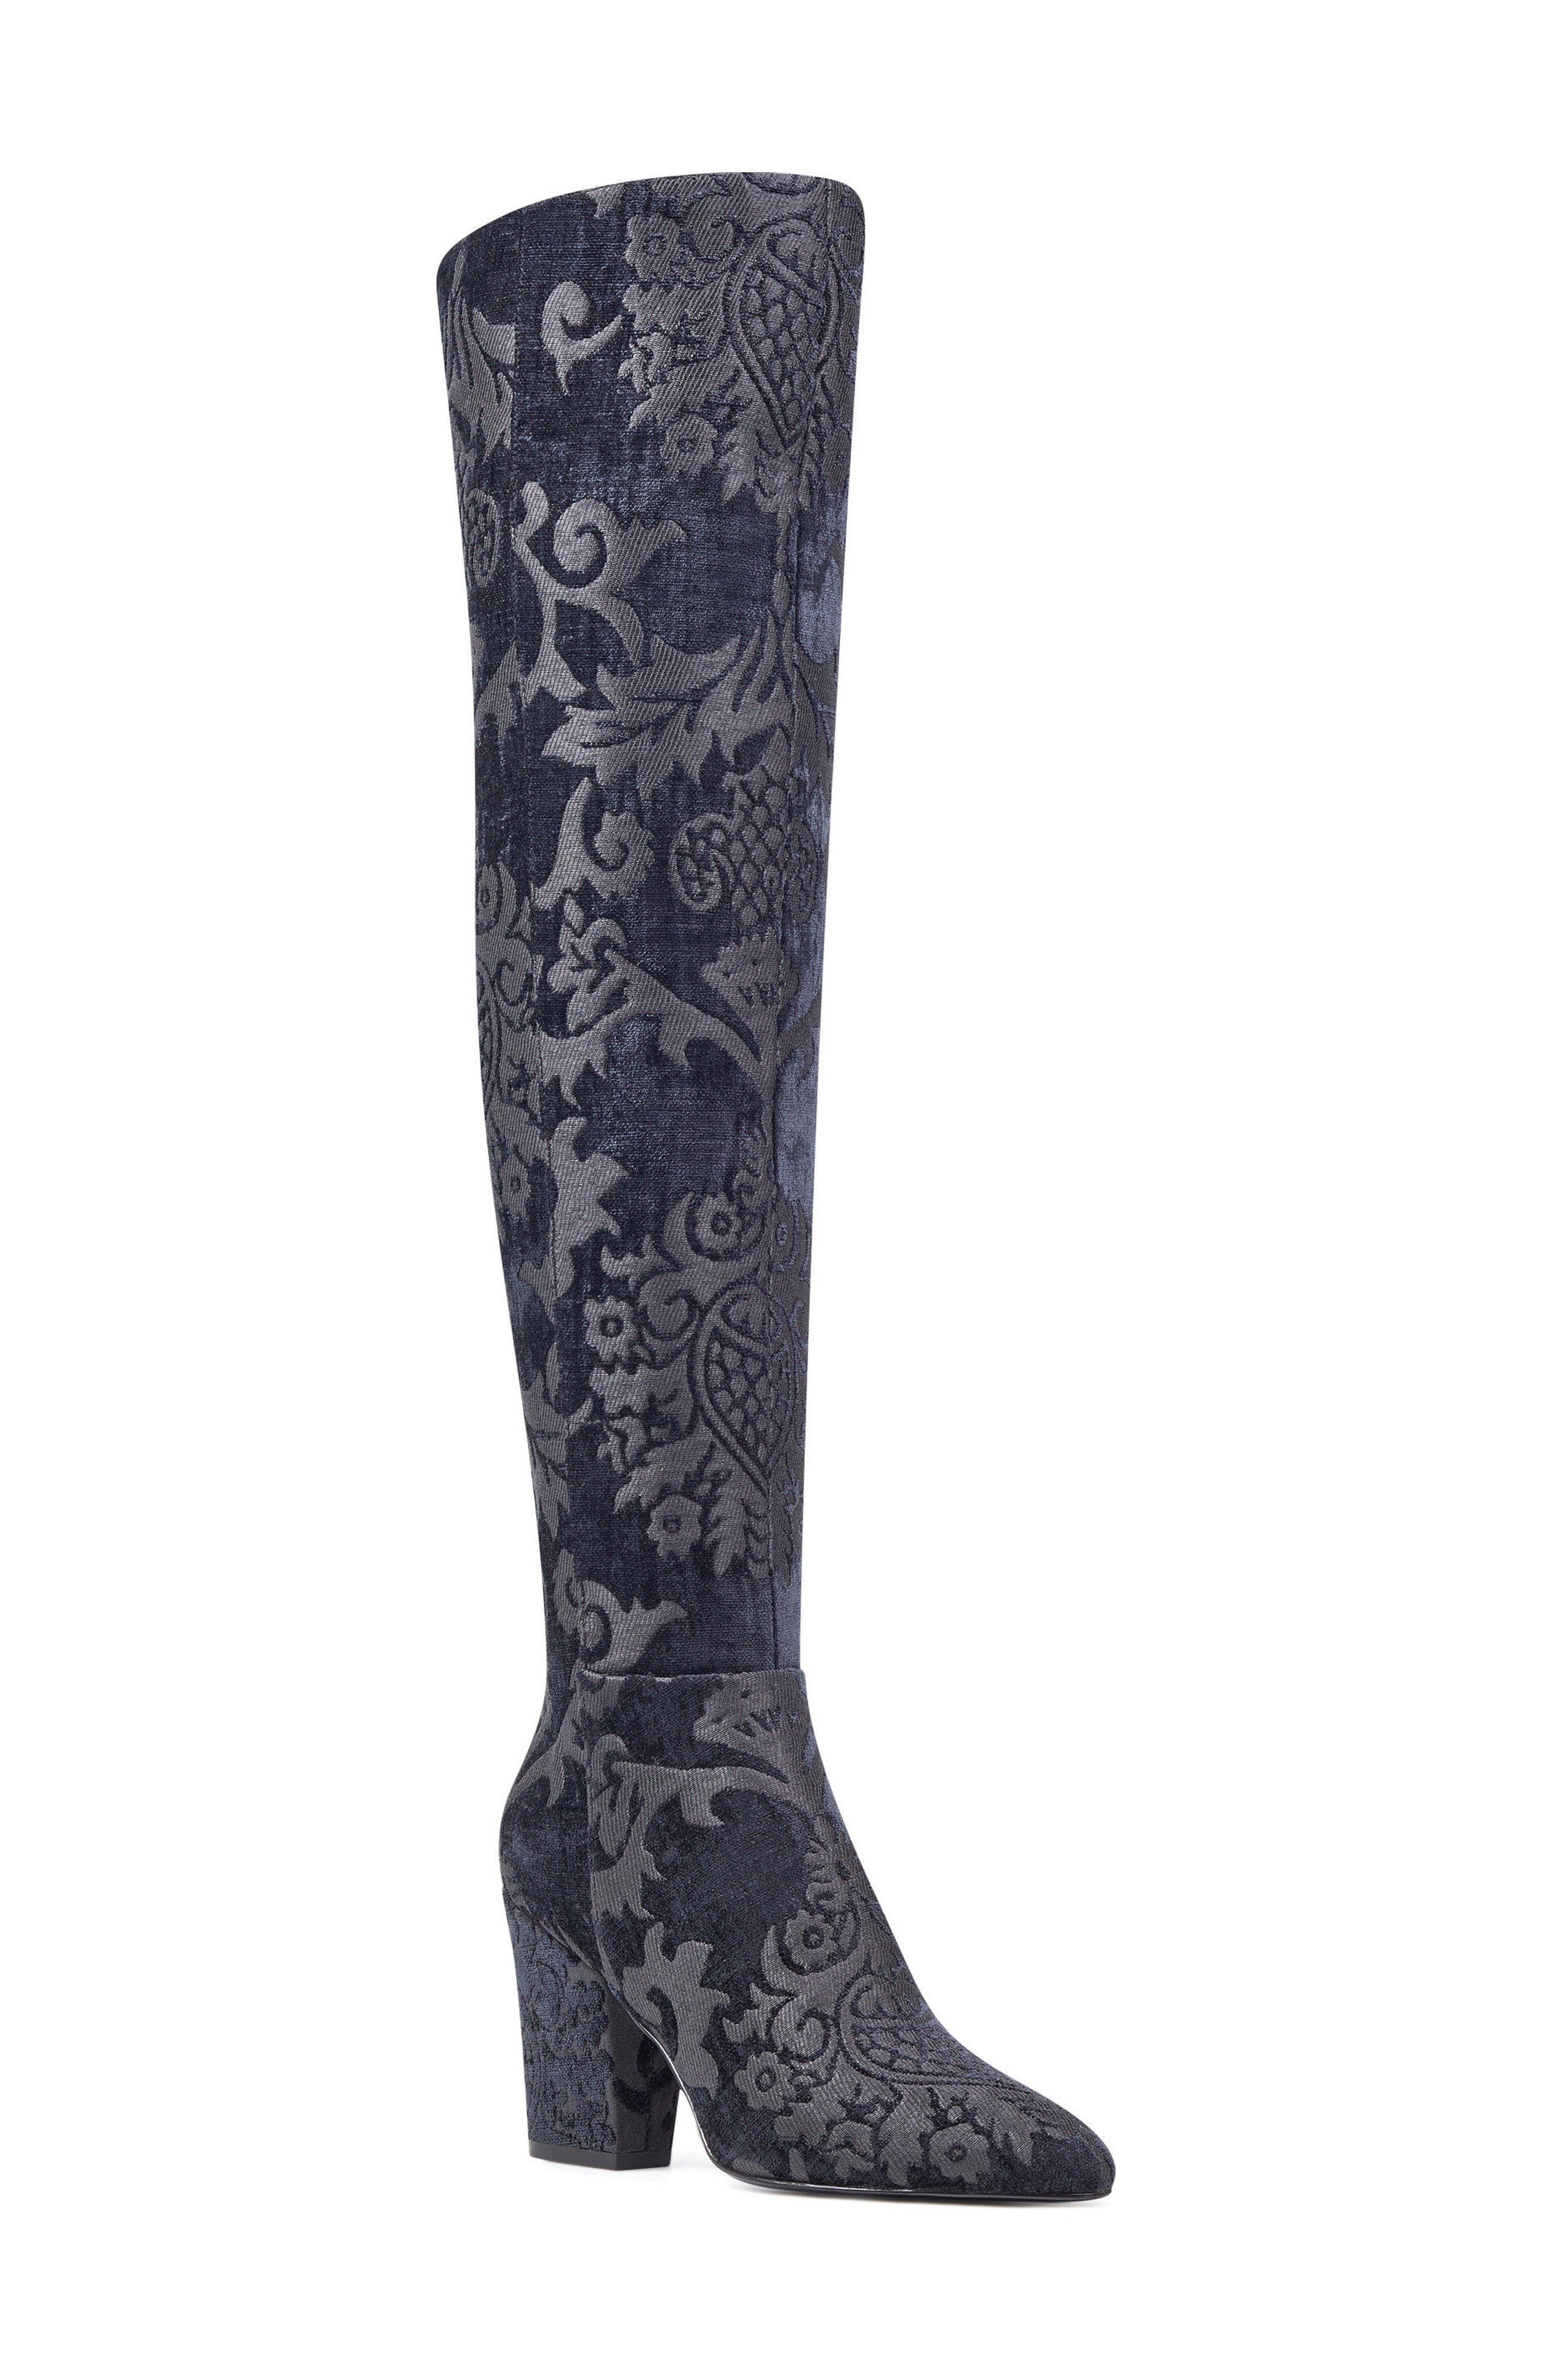 Siventa Over the Knee Boot,                             Main thumbnail 1, color,                             001